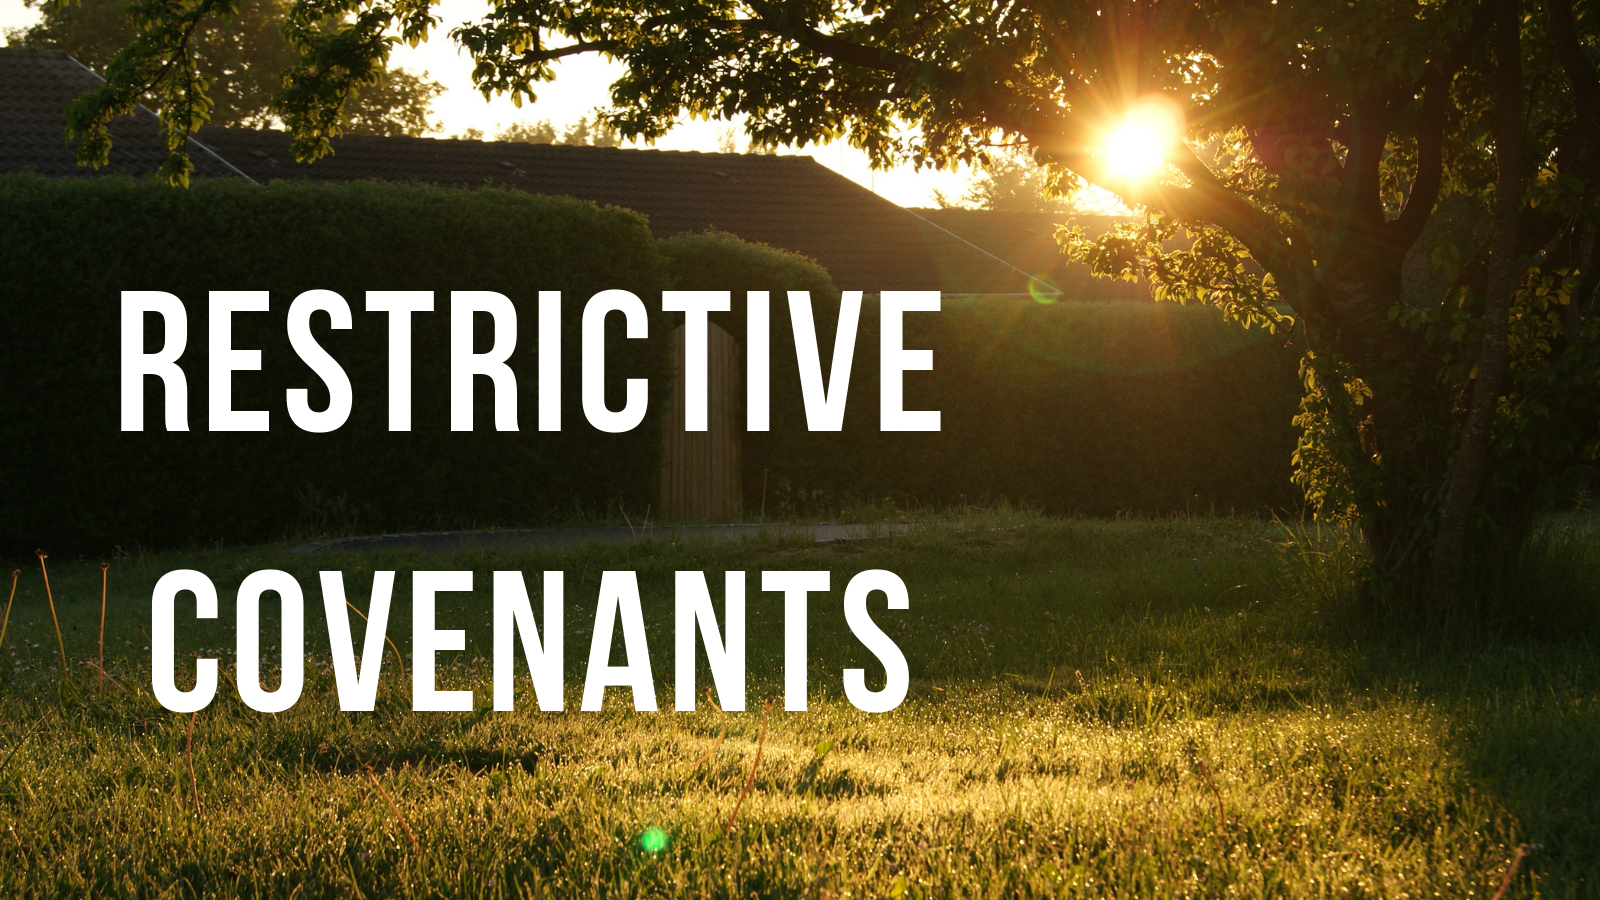 Restrictive covenants….or are they?